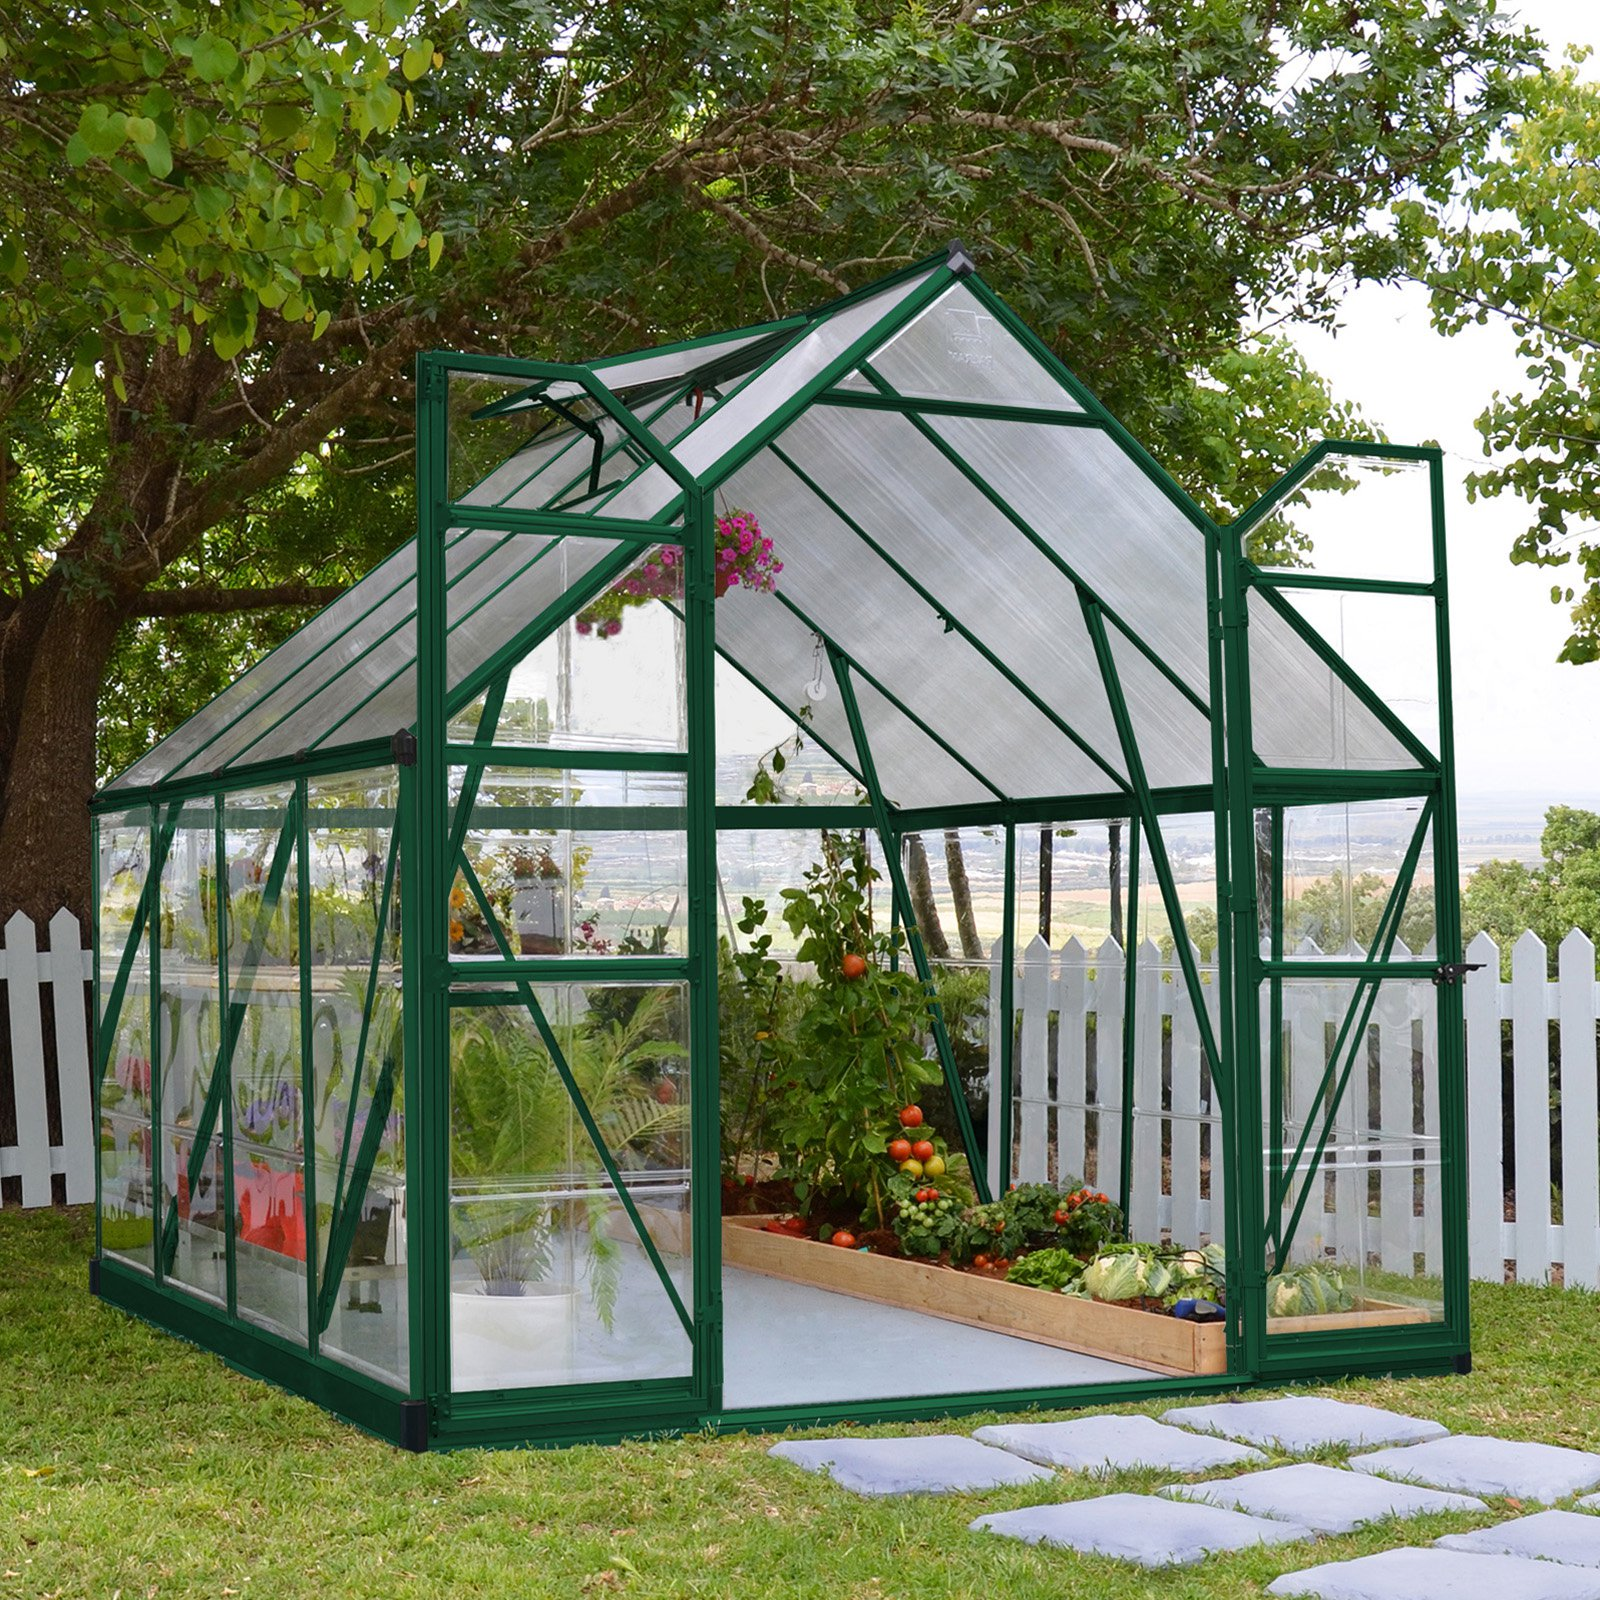 Green Balance 8' x 8' Greenhouse by Palram